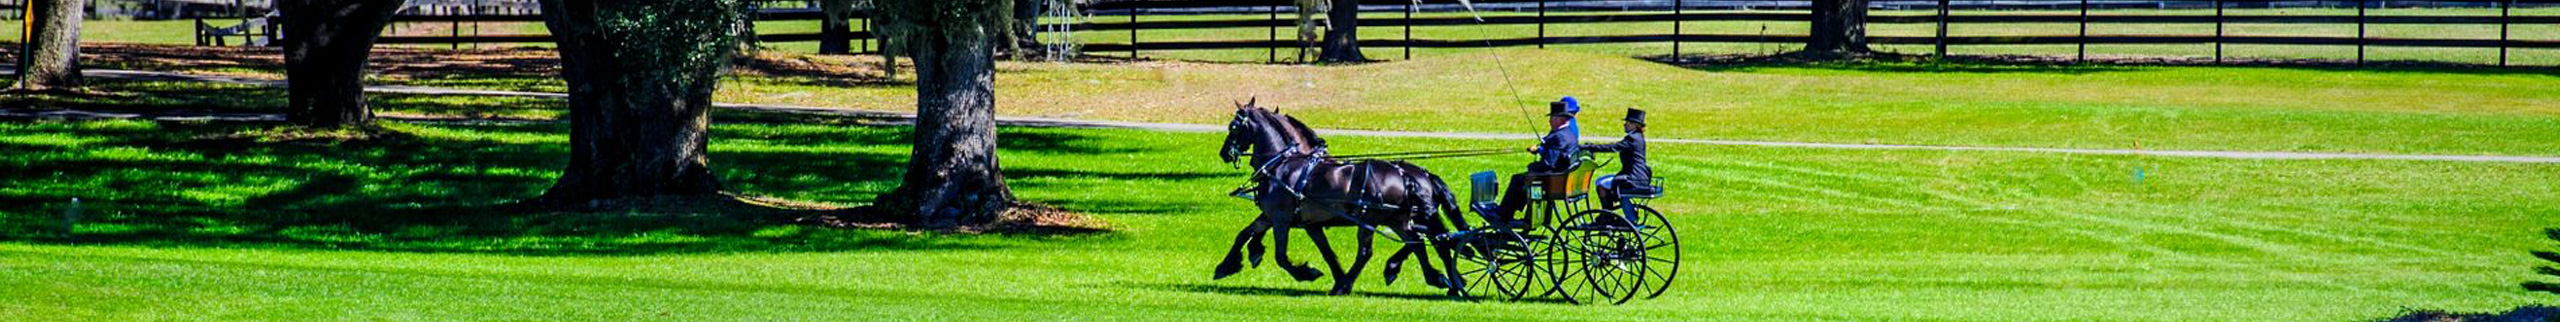 Three people driving a team of horses across a park.